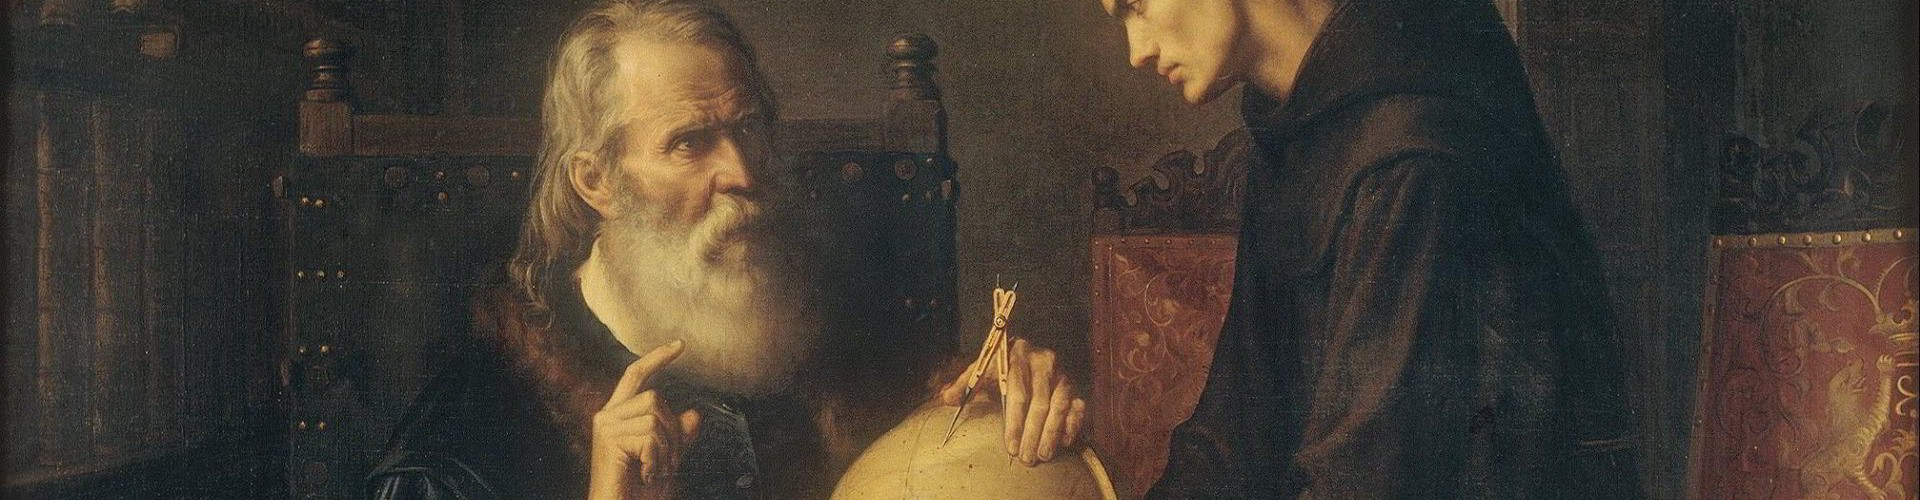 Galileo demonstrating the new astronomical theories at the University of Padua (Credit: painting by Félix Parra, 1873)